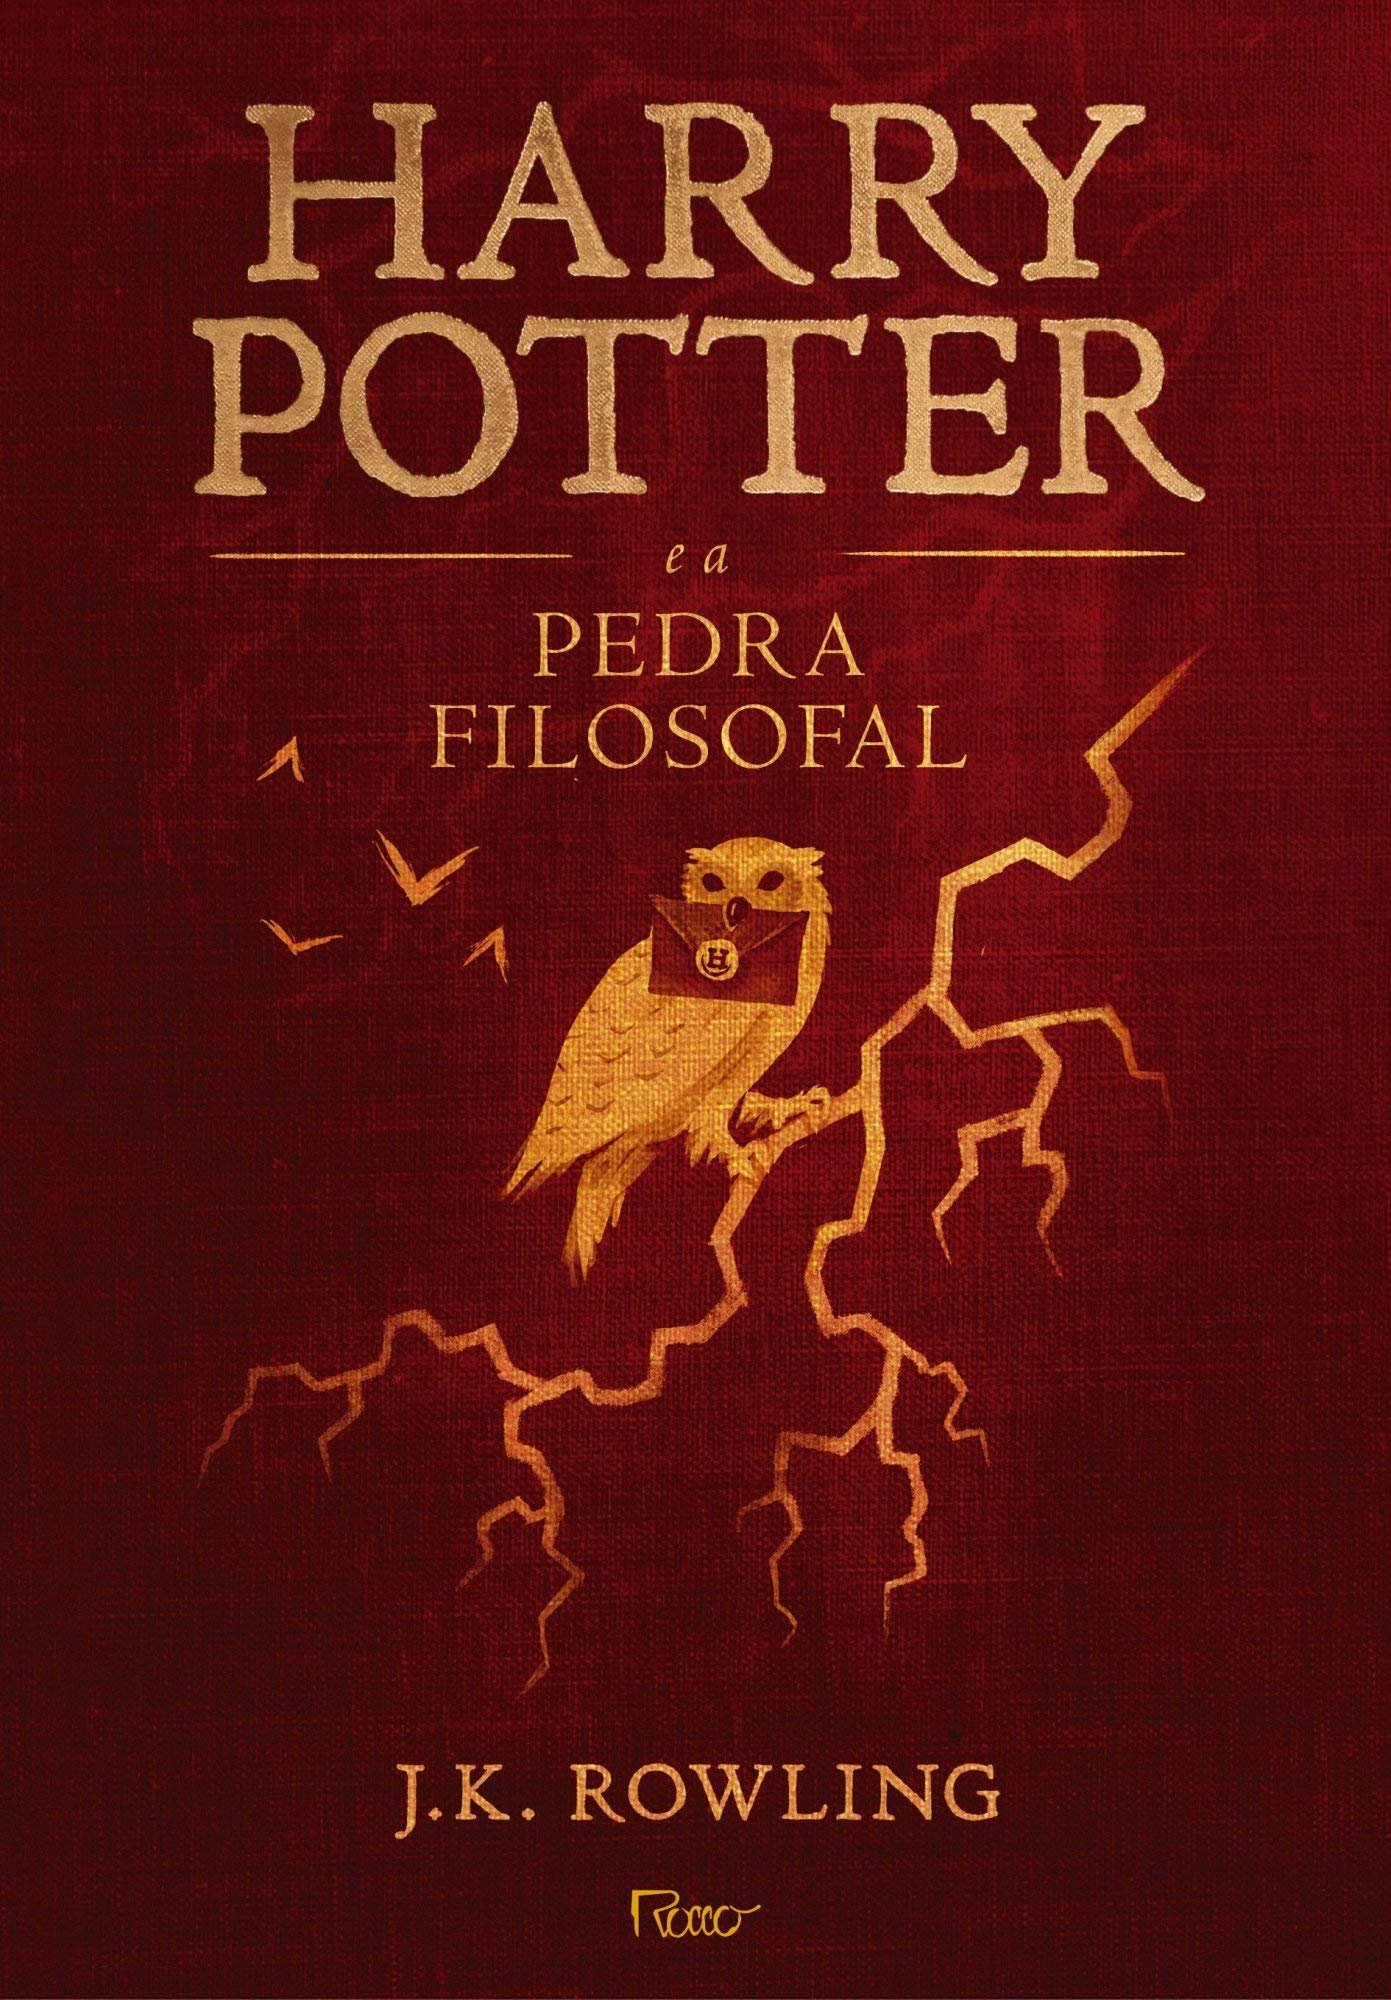 harry potter e a pedra filosofal 9788532530783 amazon com books harry potter e a pedra filosofal